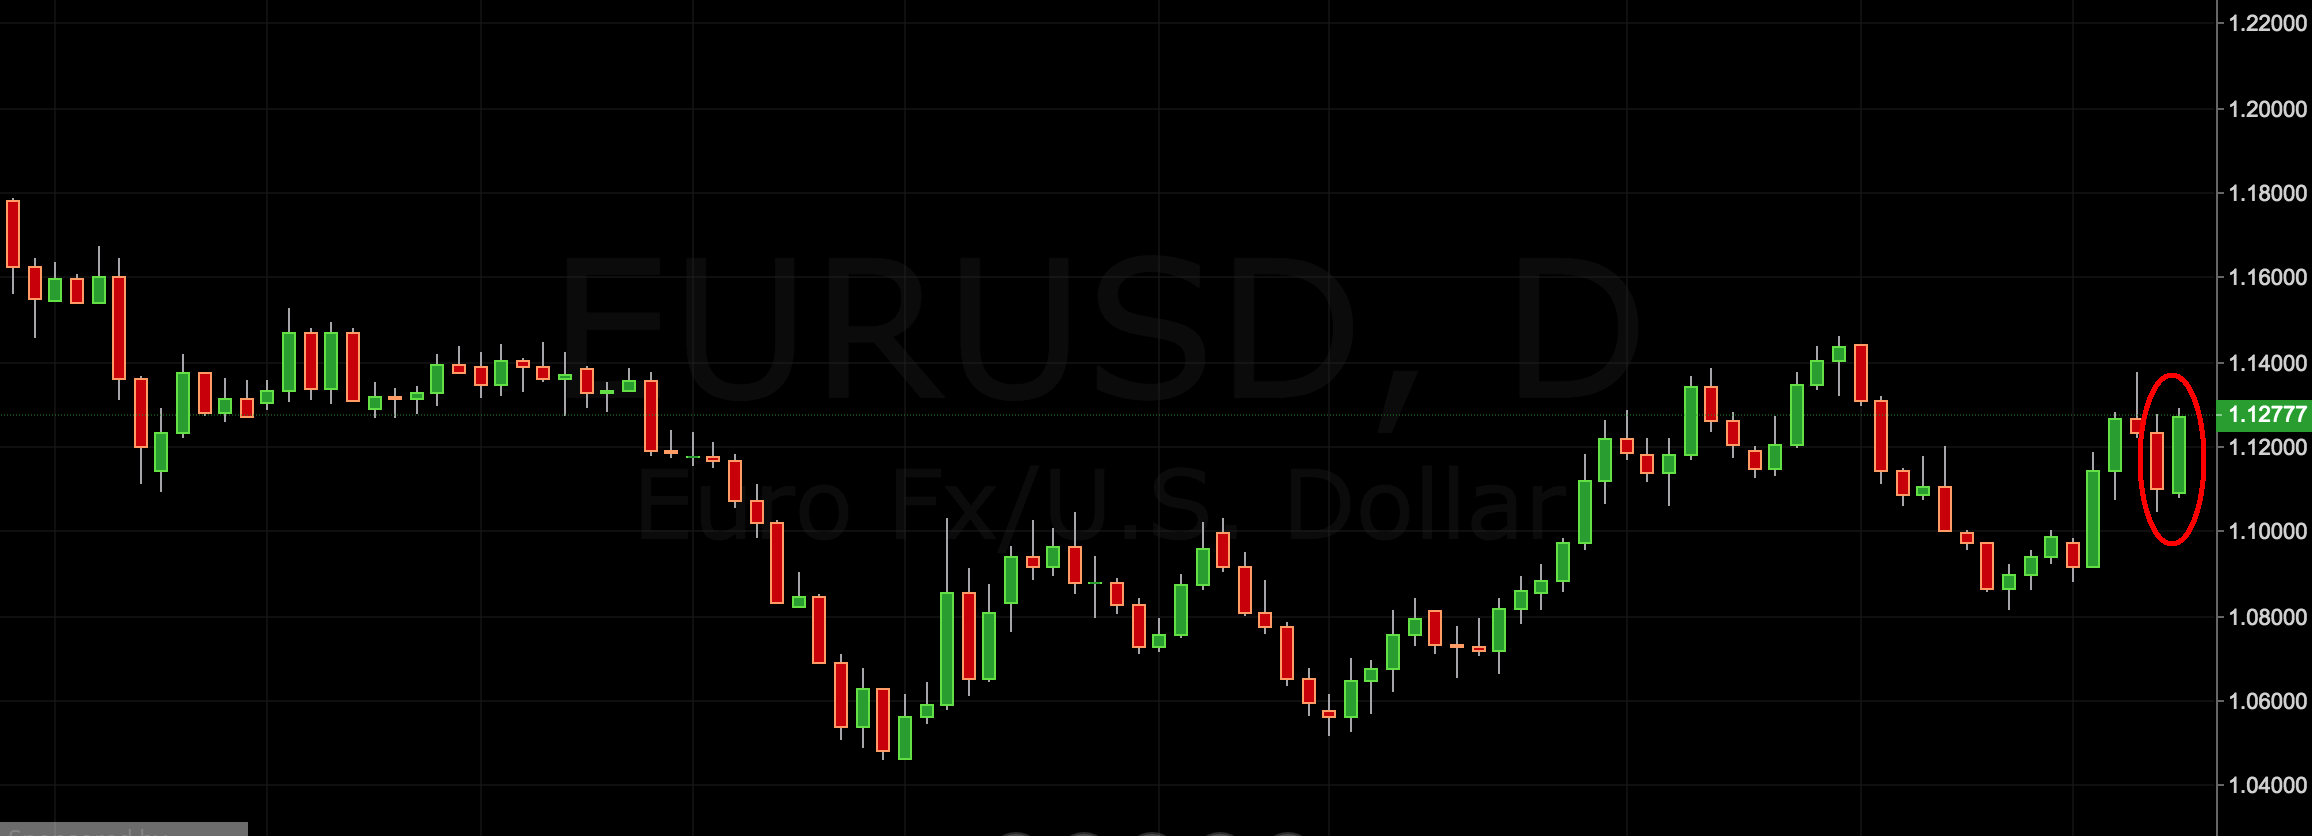 eur/usd price action